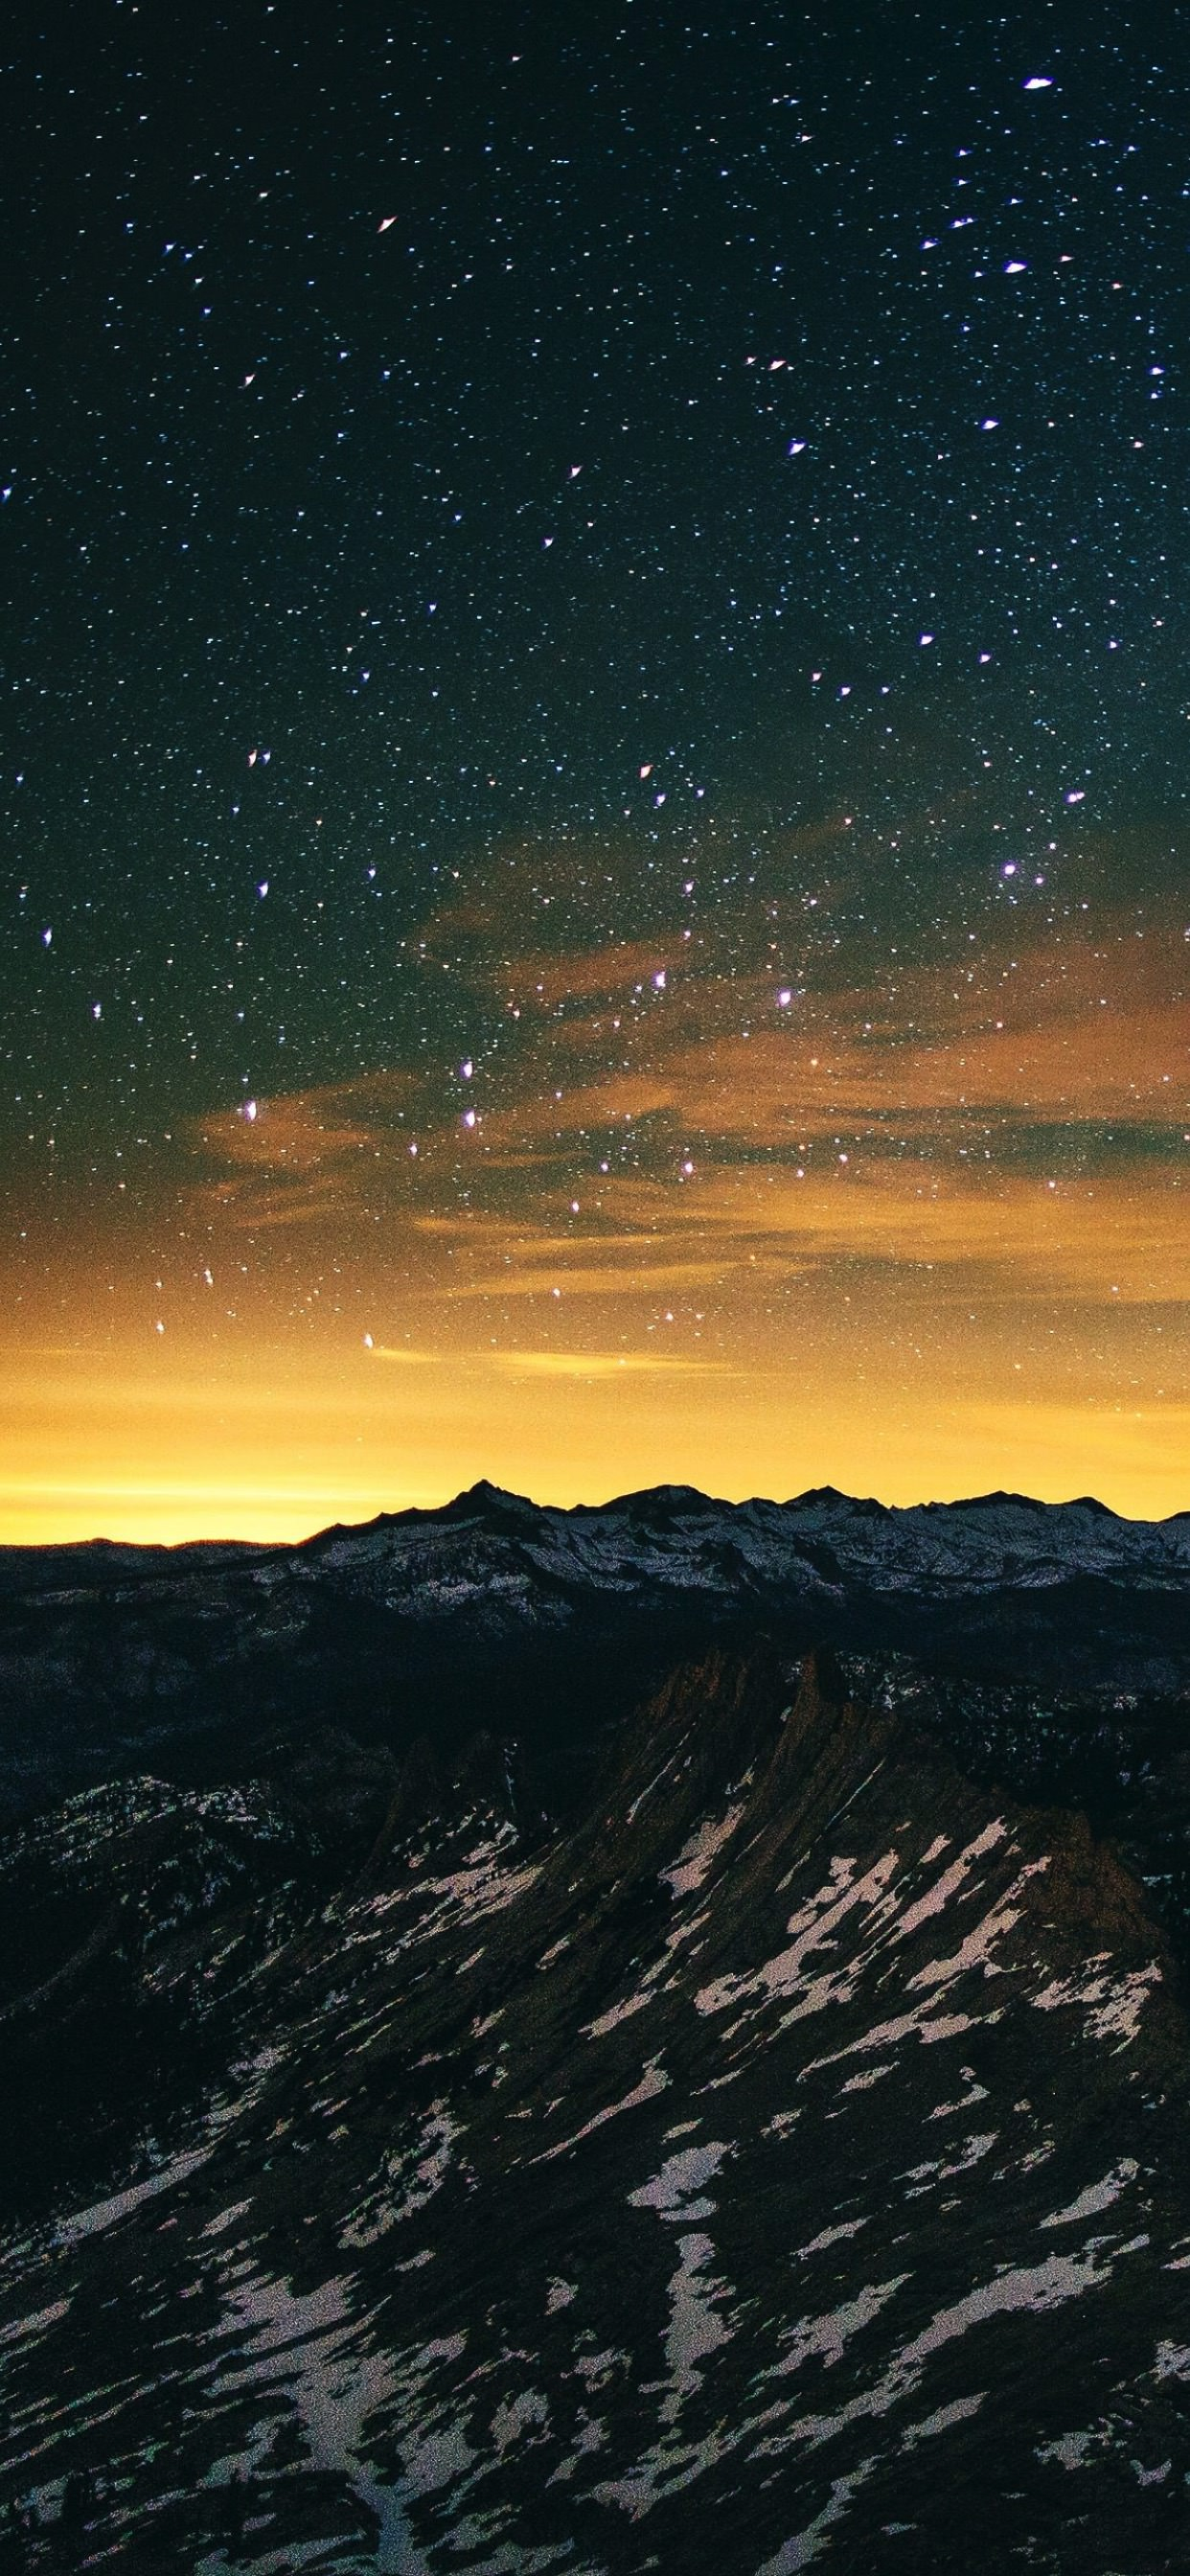 Mountain Landscape Night Sky Wallpaper Sc Iphone Xs Max